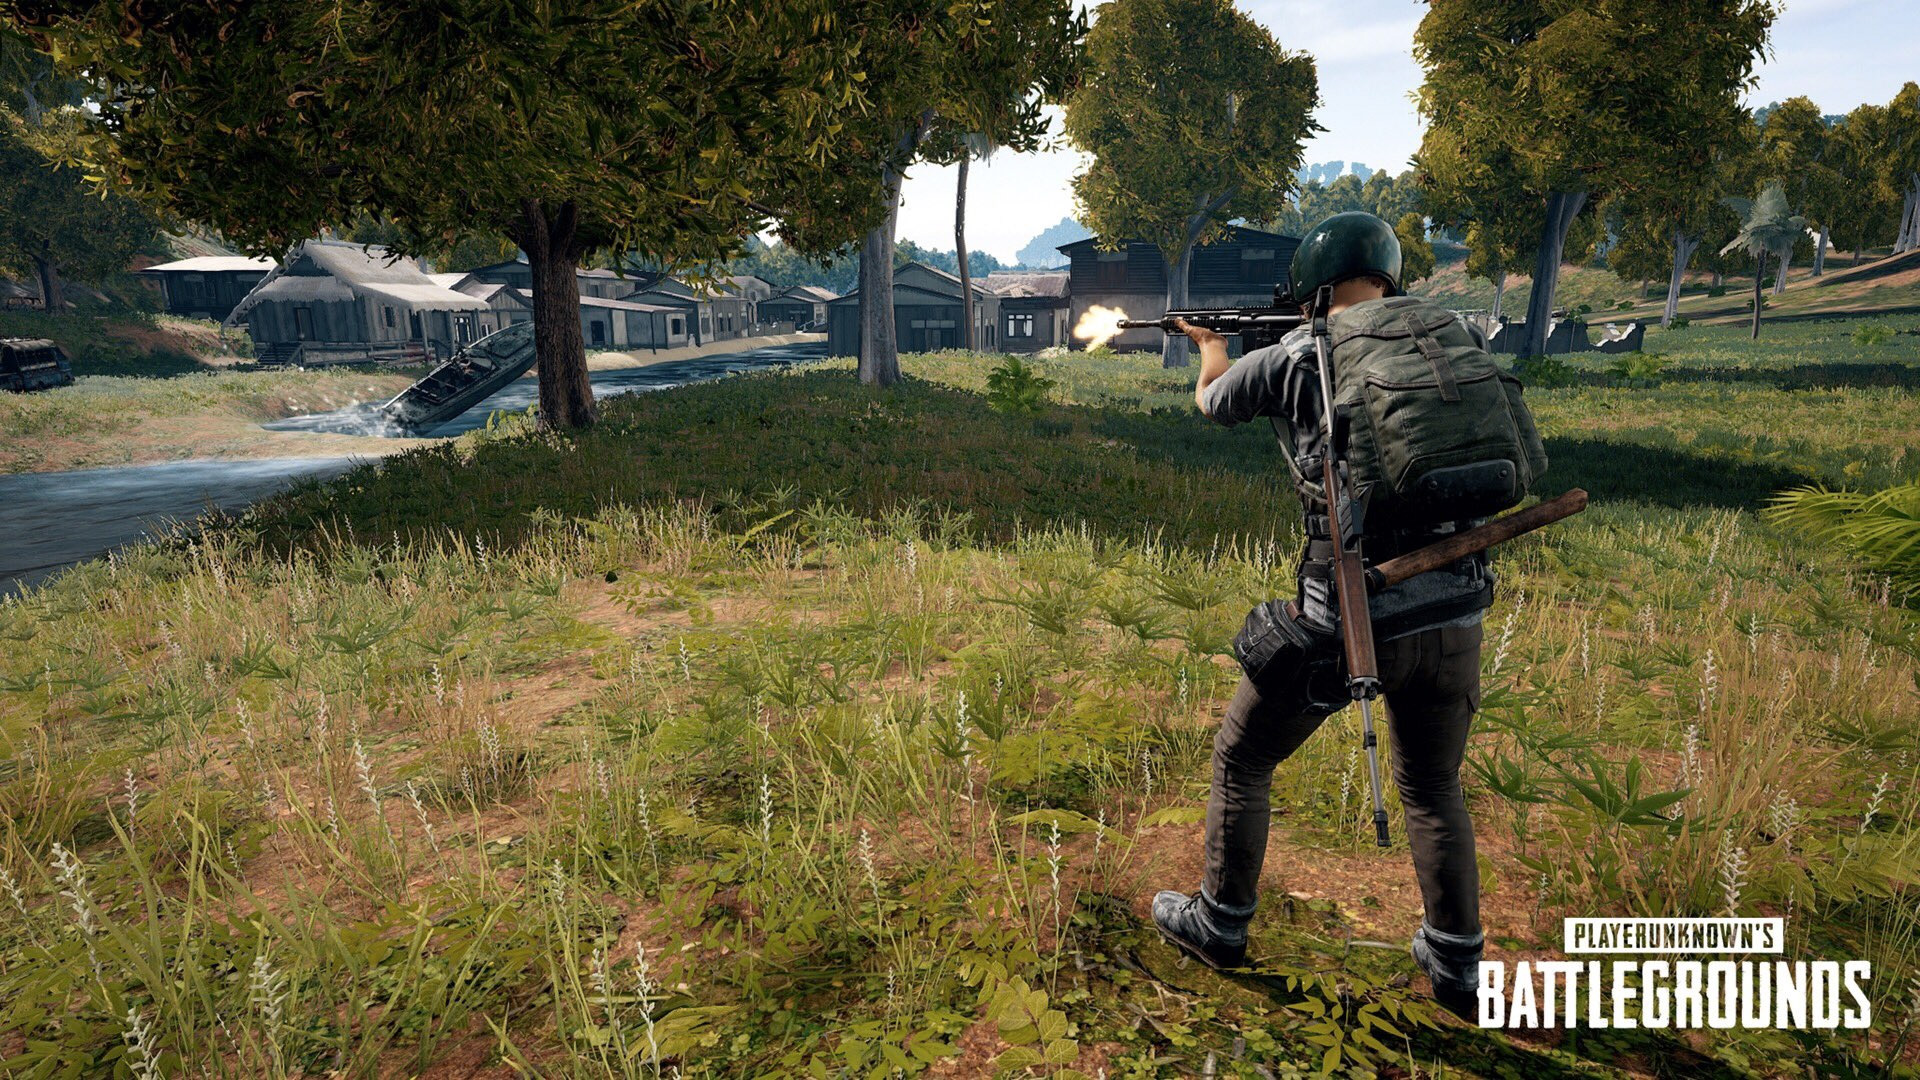 Sanhok Map Teaser Trailer: A Game Of Thrones Miniatures Game Is About To Blow Up On